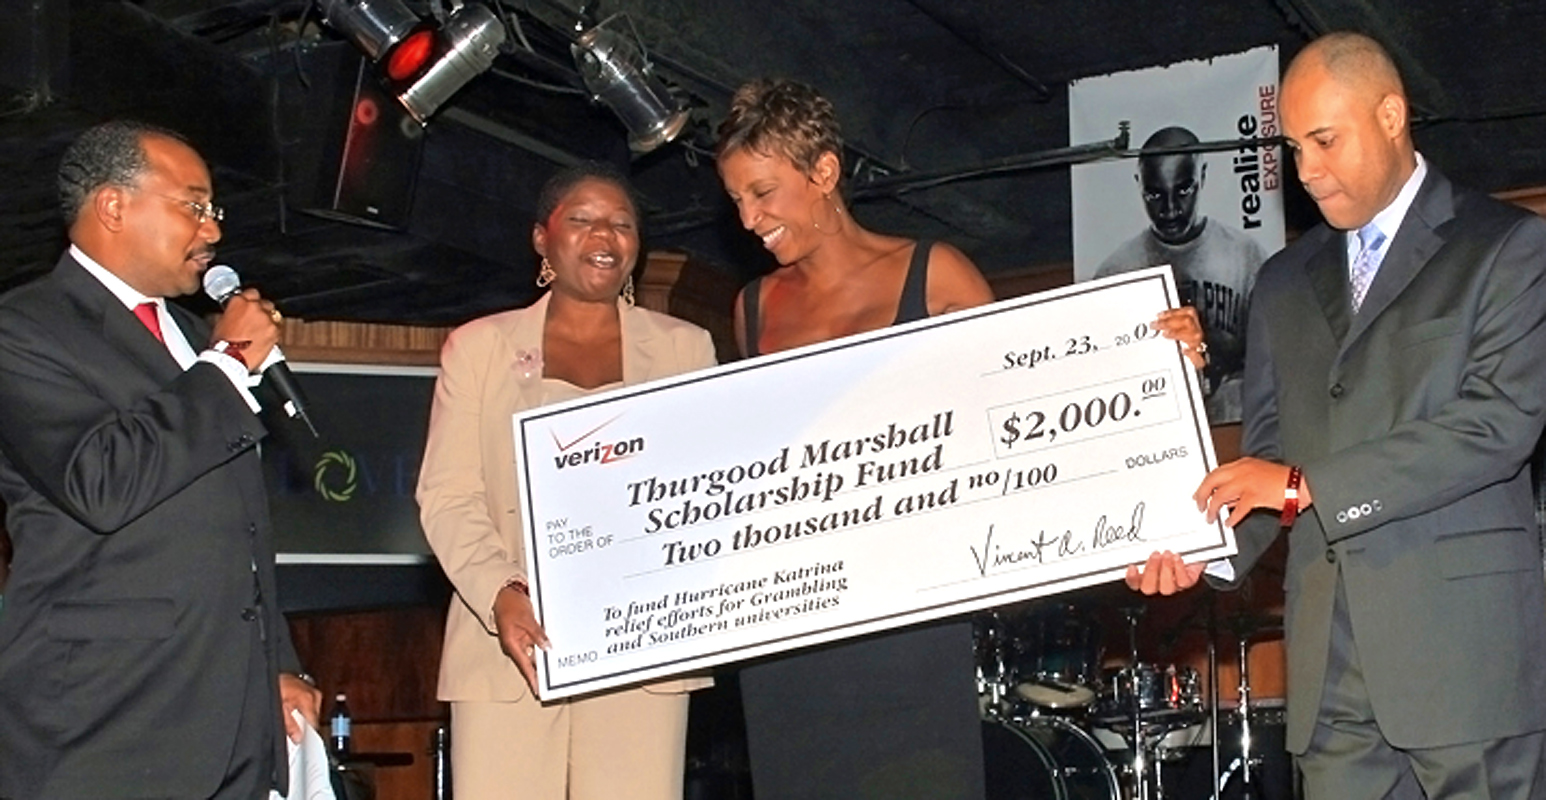 Verizon thurgood marshall scholarship fund 800x